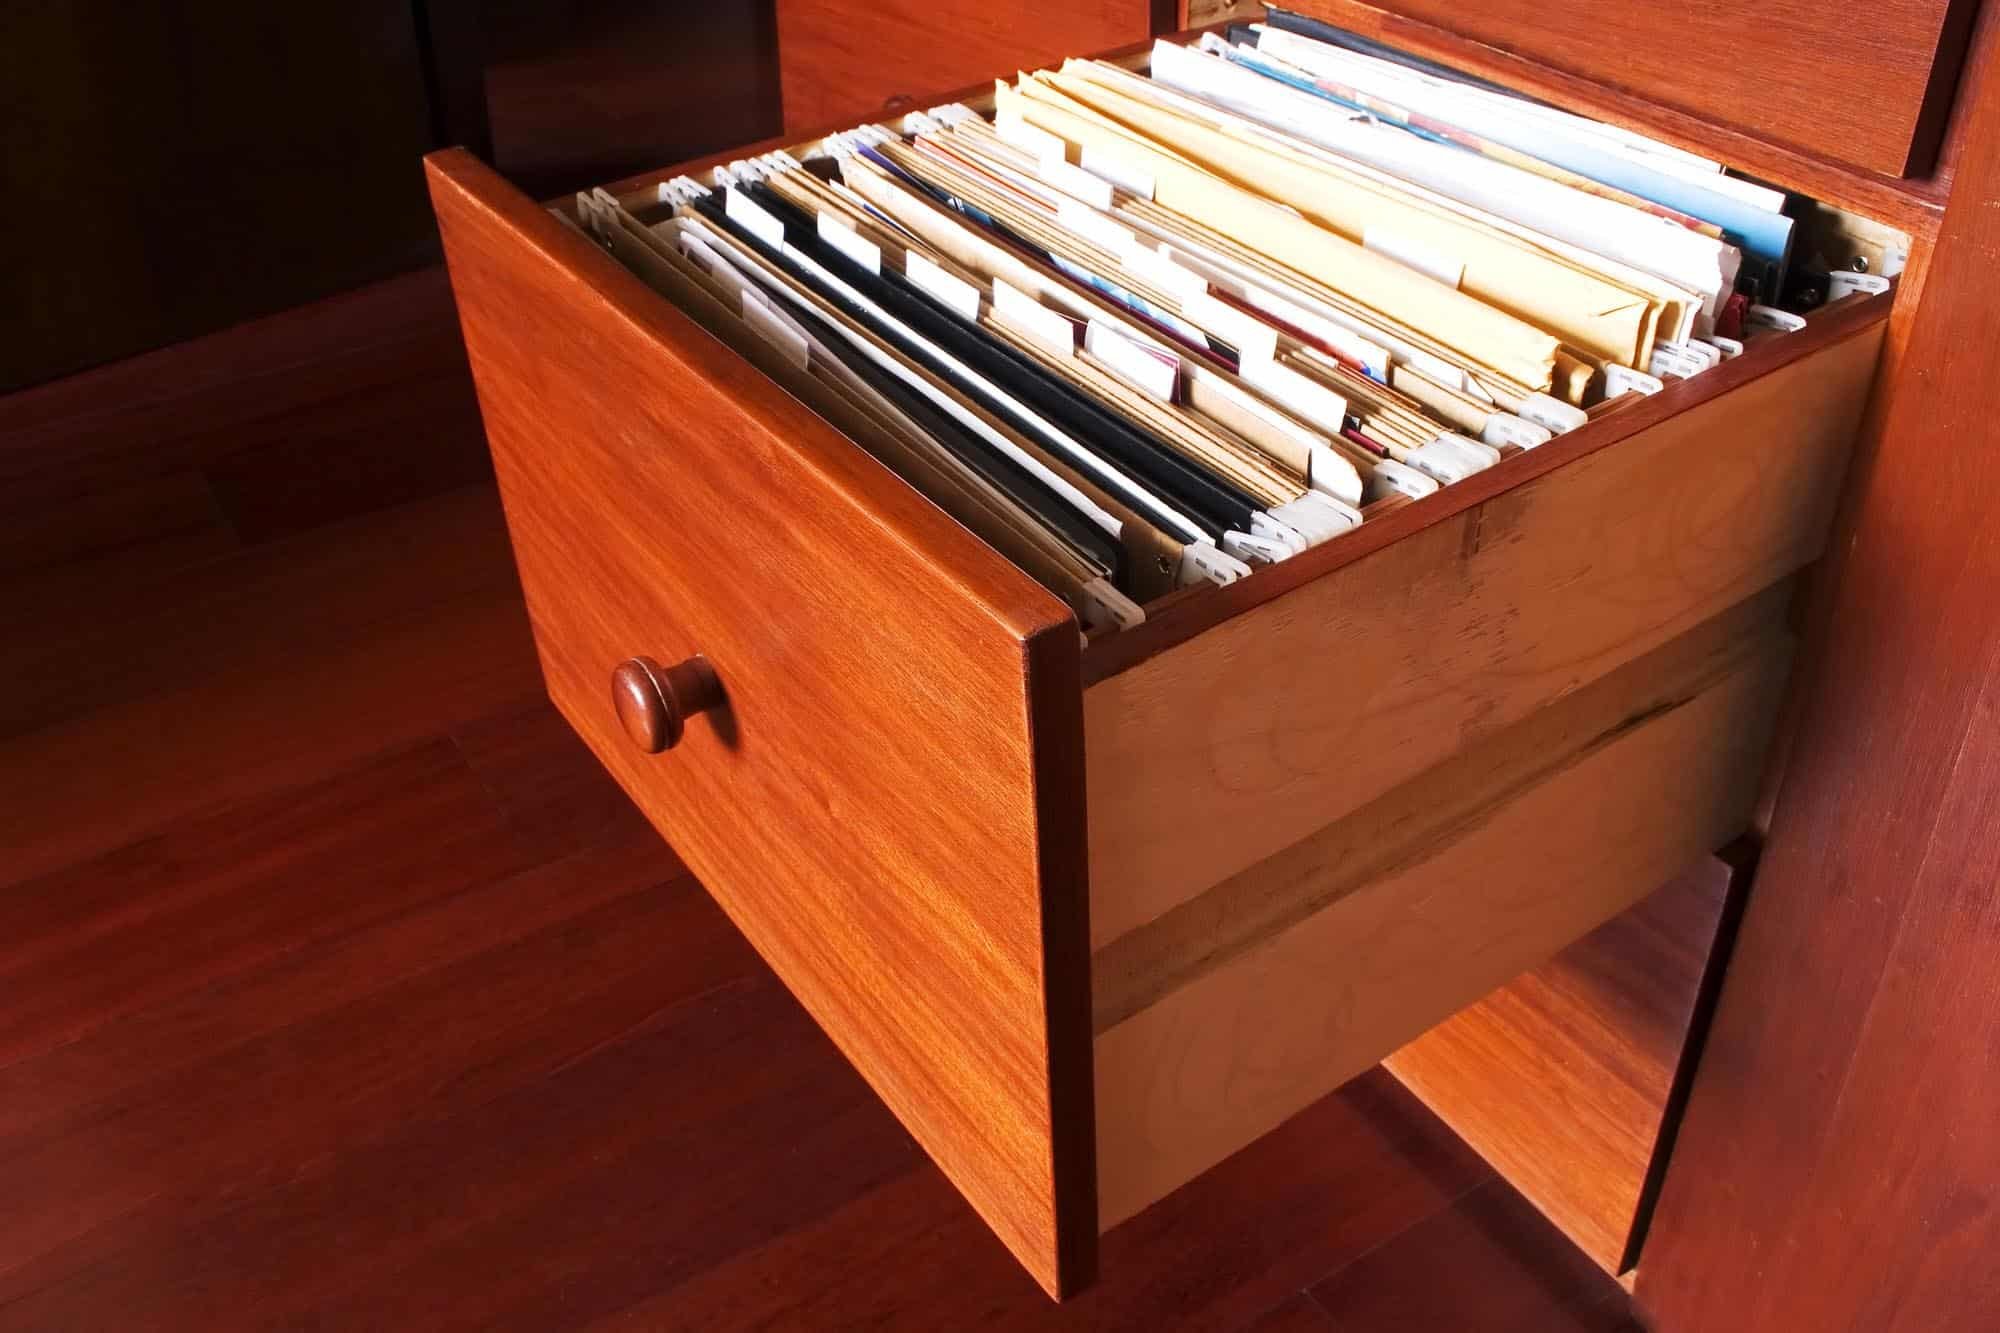 How To Organize Desk Drawers